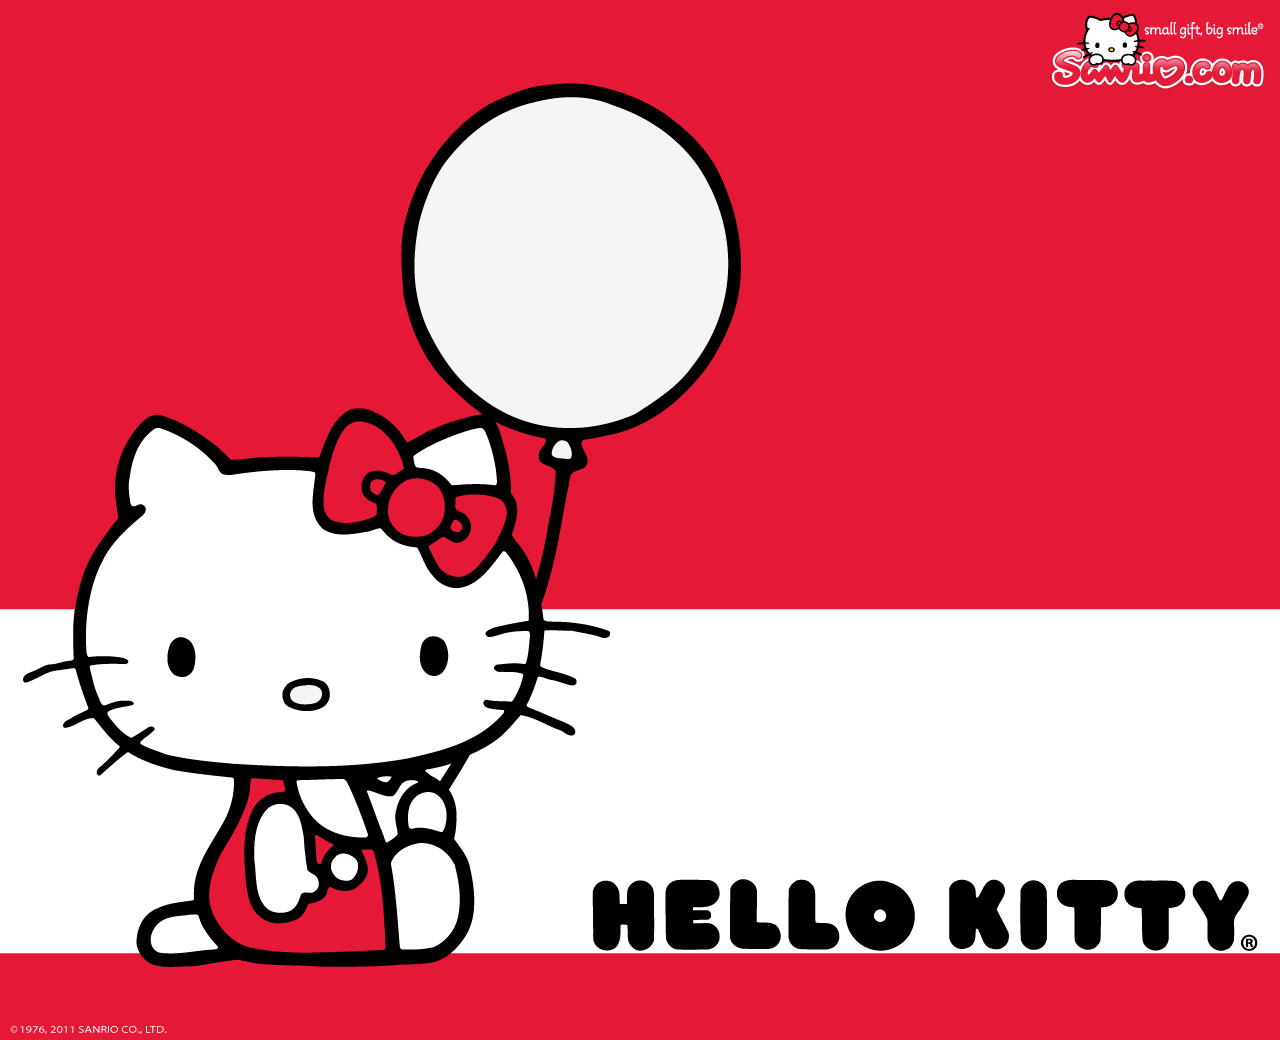 Wallpapers hello kitty 28941604 1280 1040